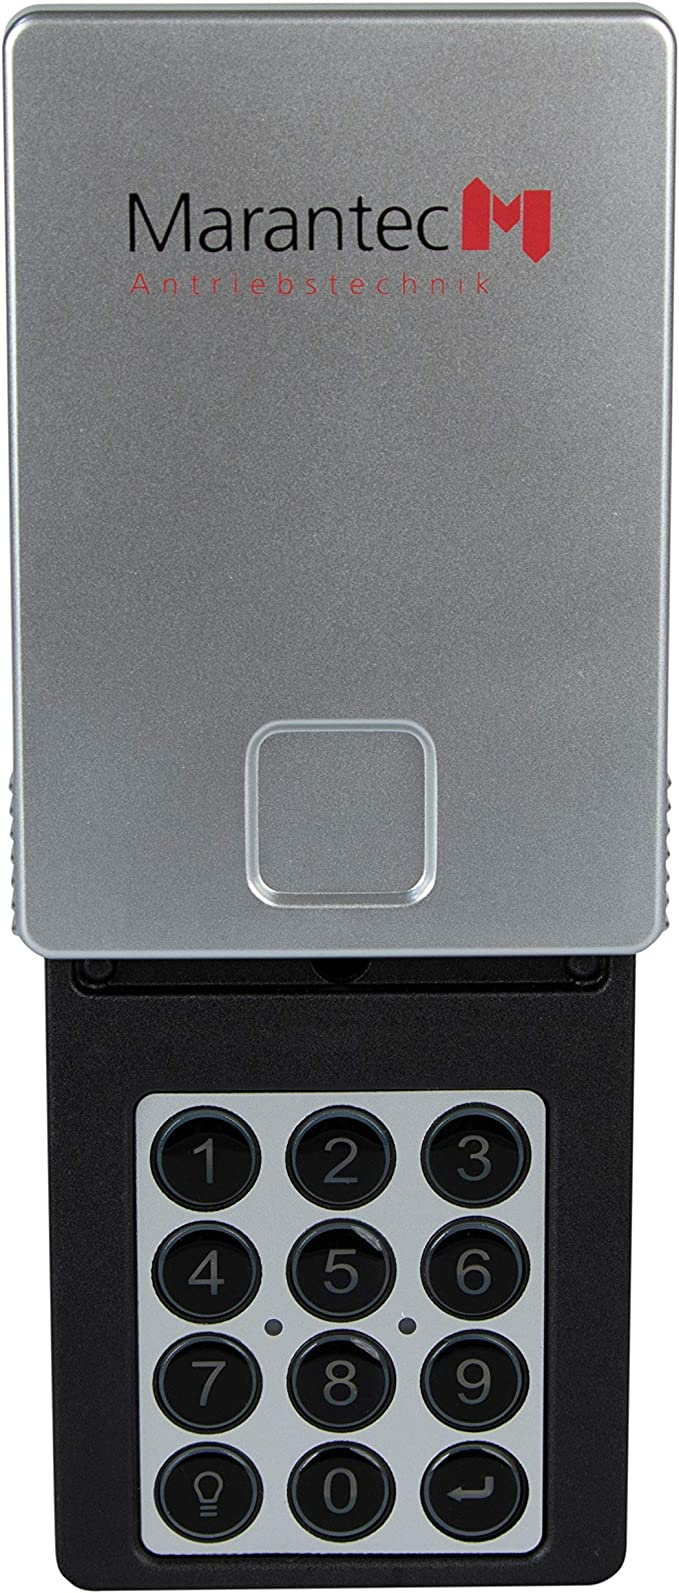 """SECURITY ALARM COVER ELEMENT RESISTANCE FOR KEY-LESS REMOTE//ALARM /""""Small//Black/"""""""